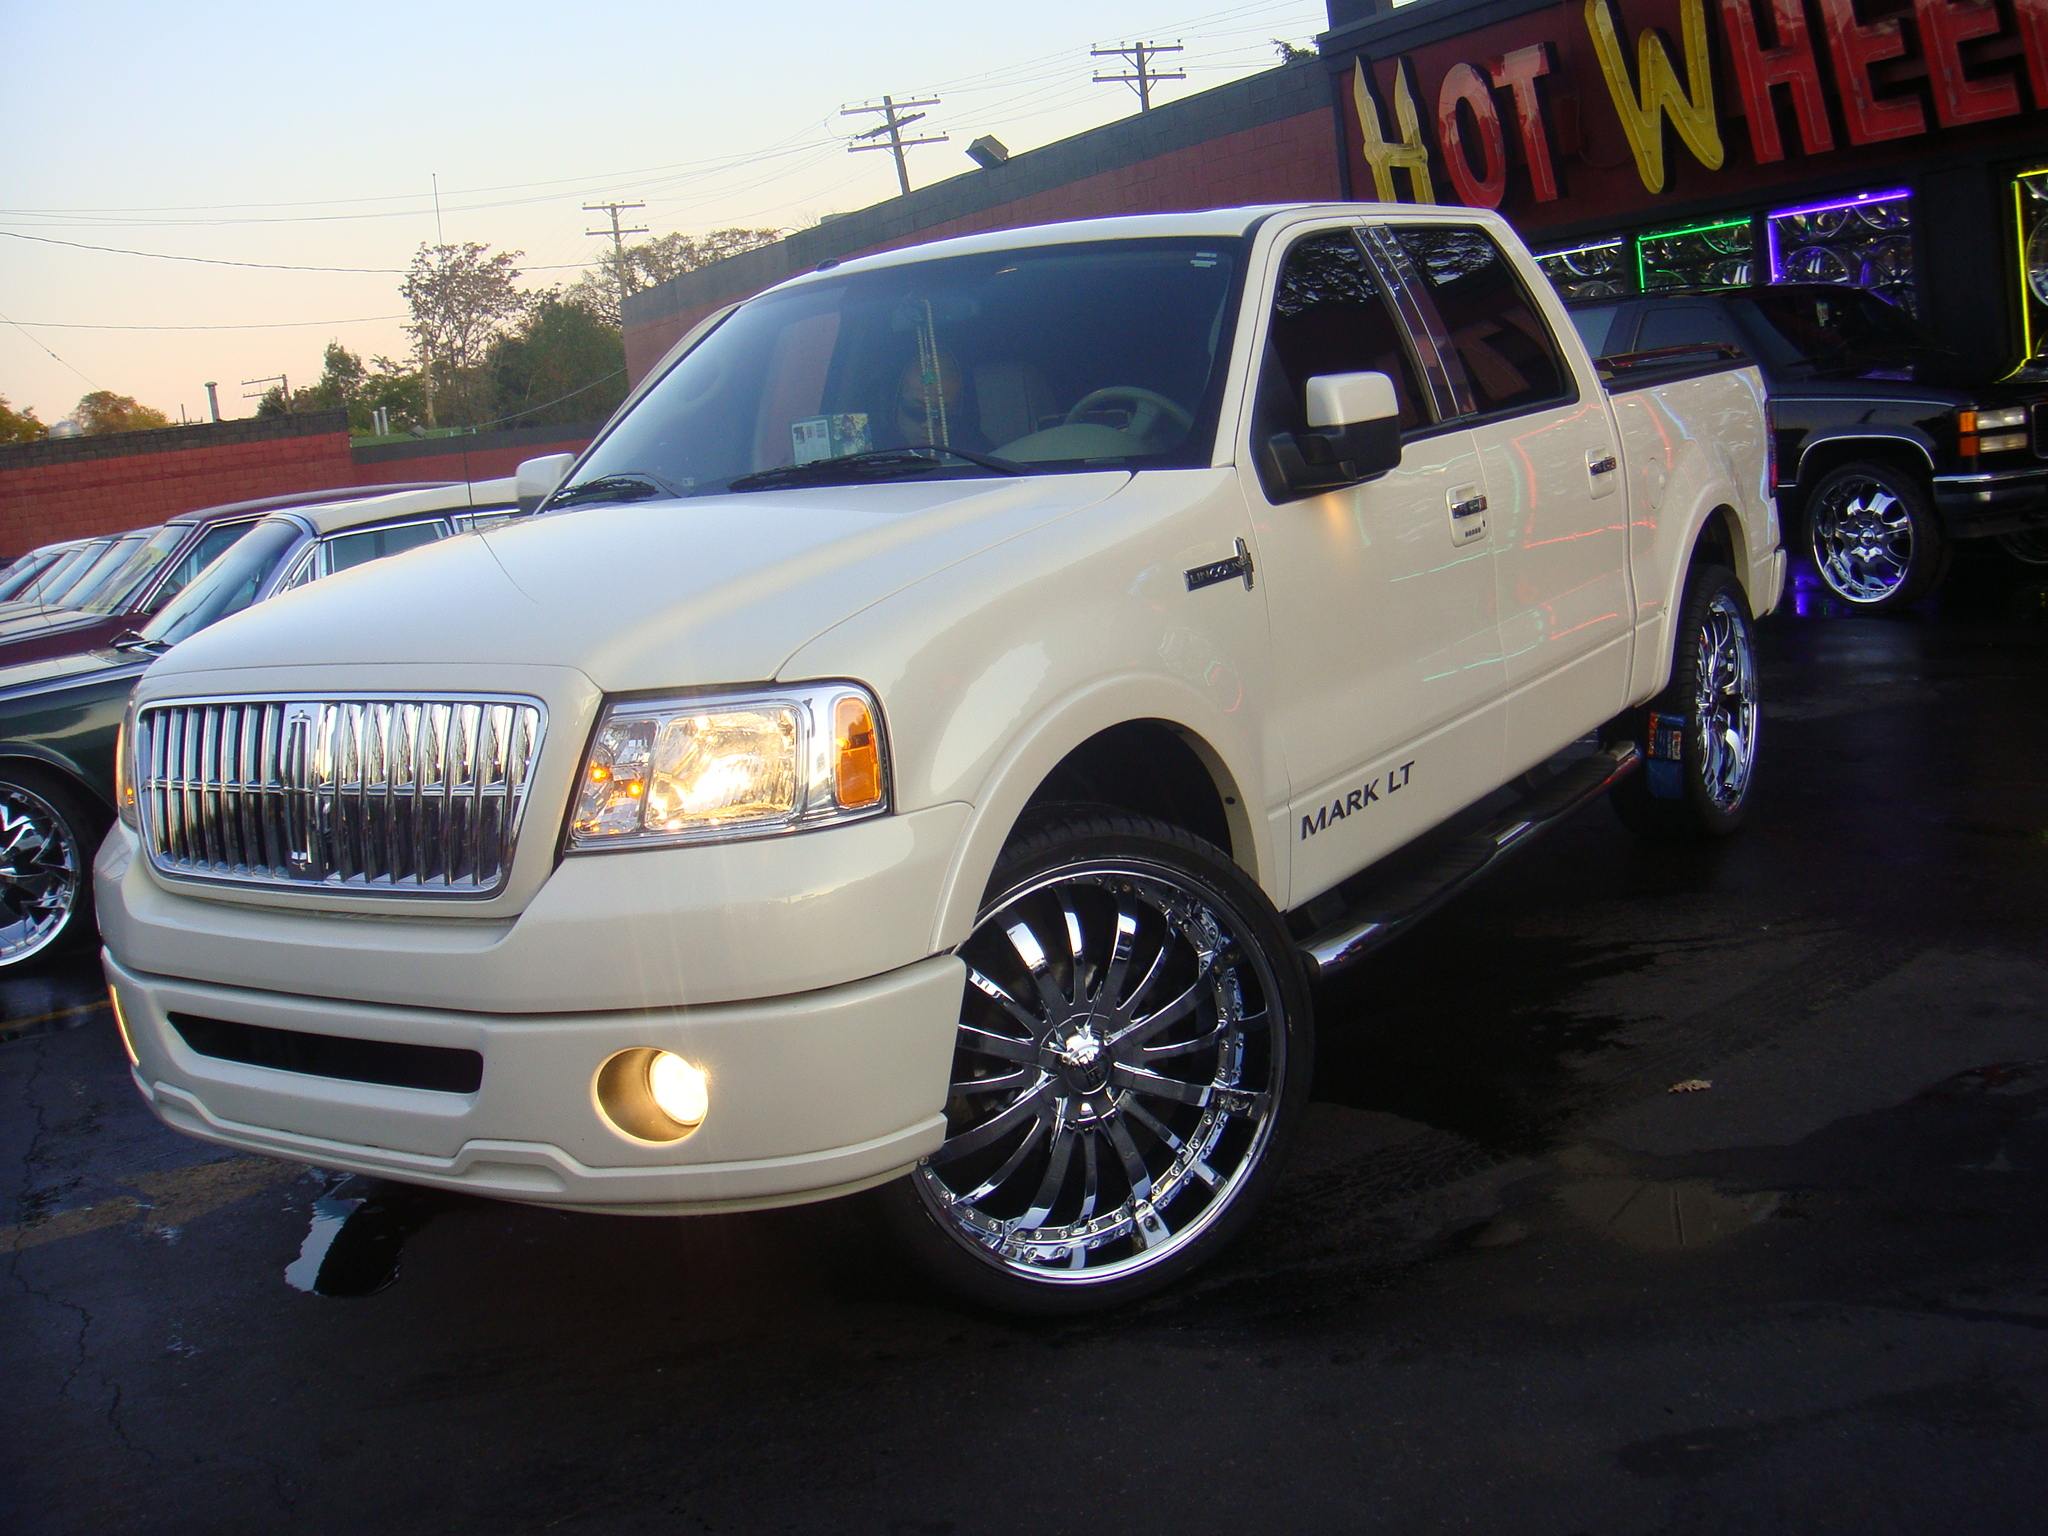 h0tb0y051's 2008 Lincoln Mark LT